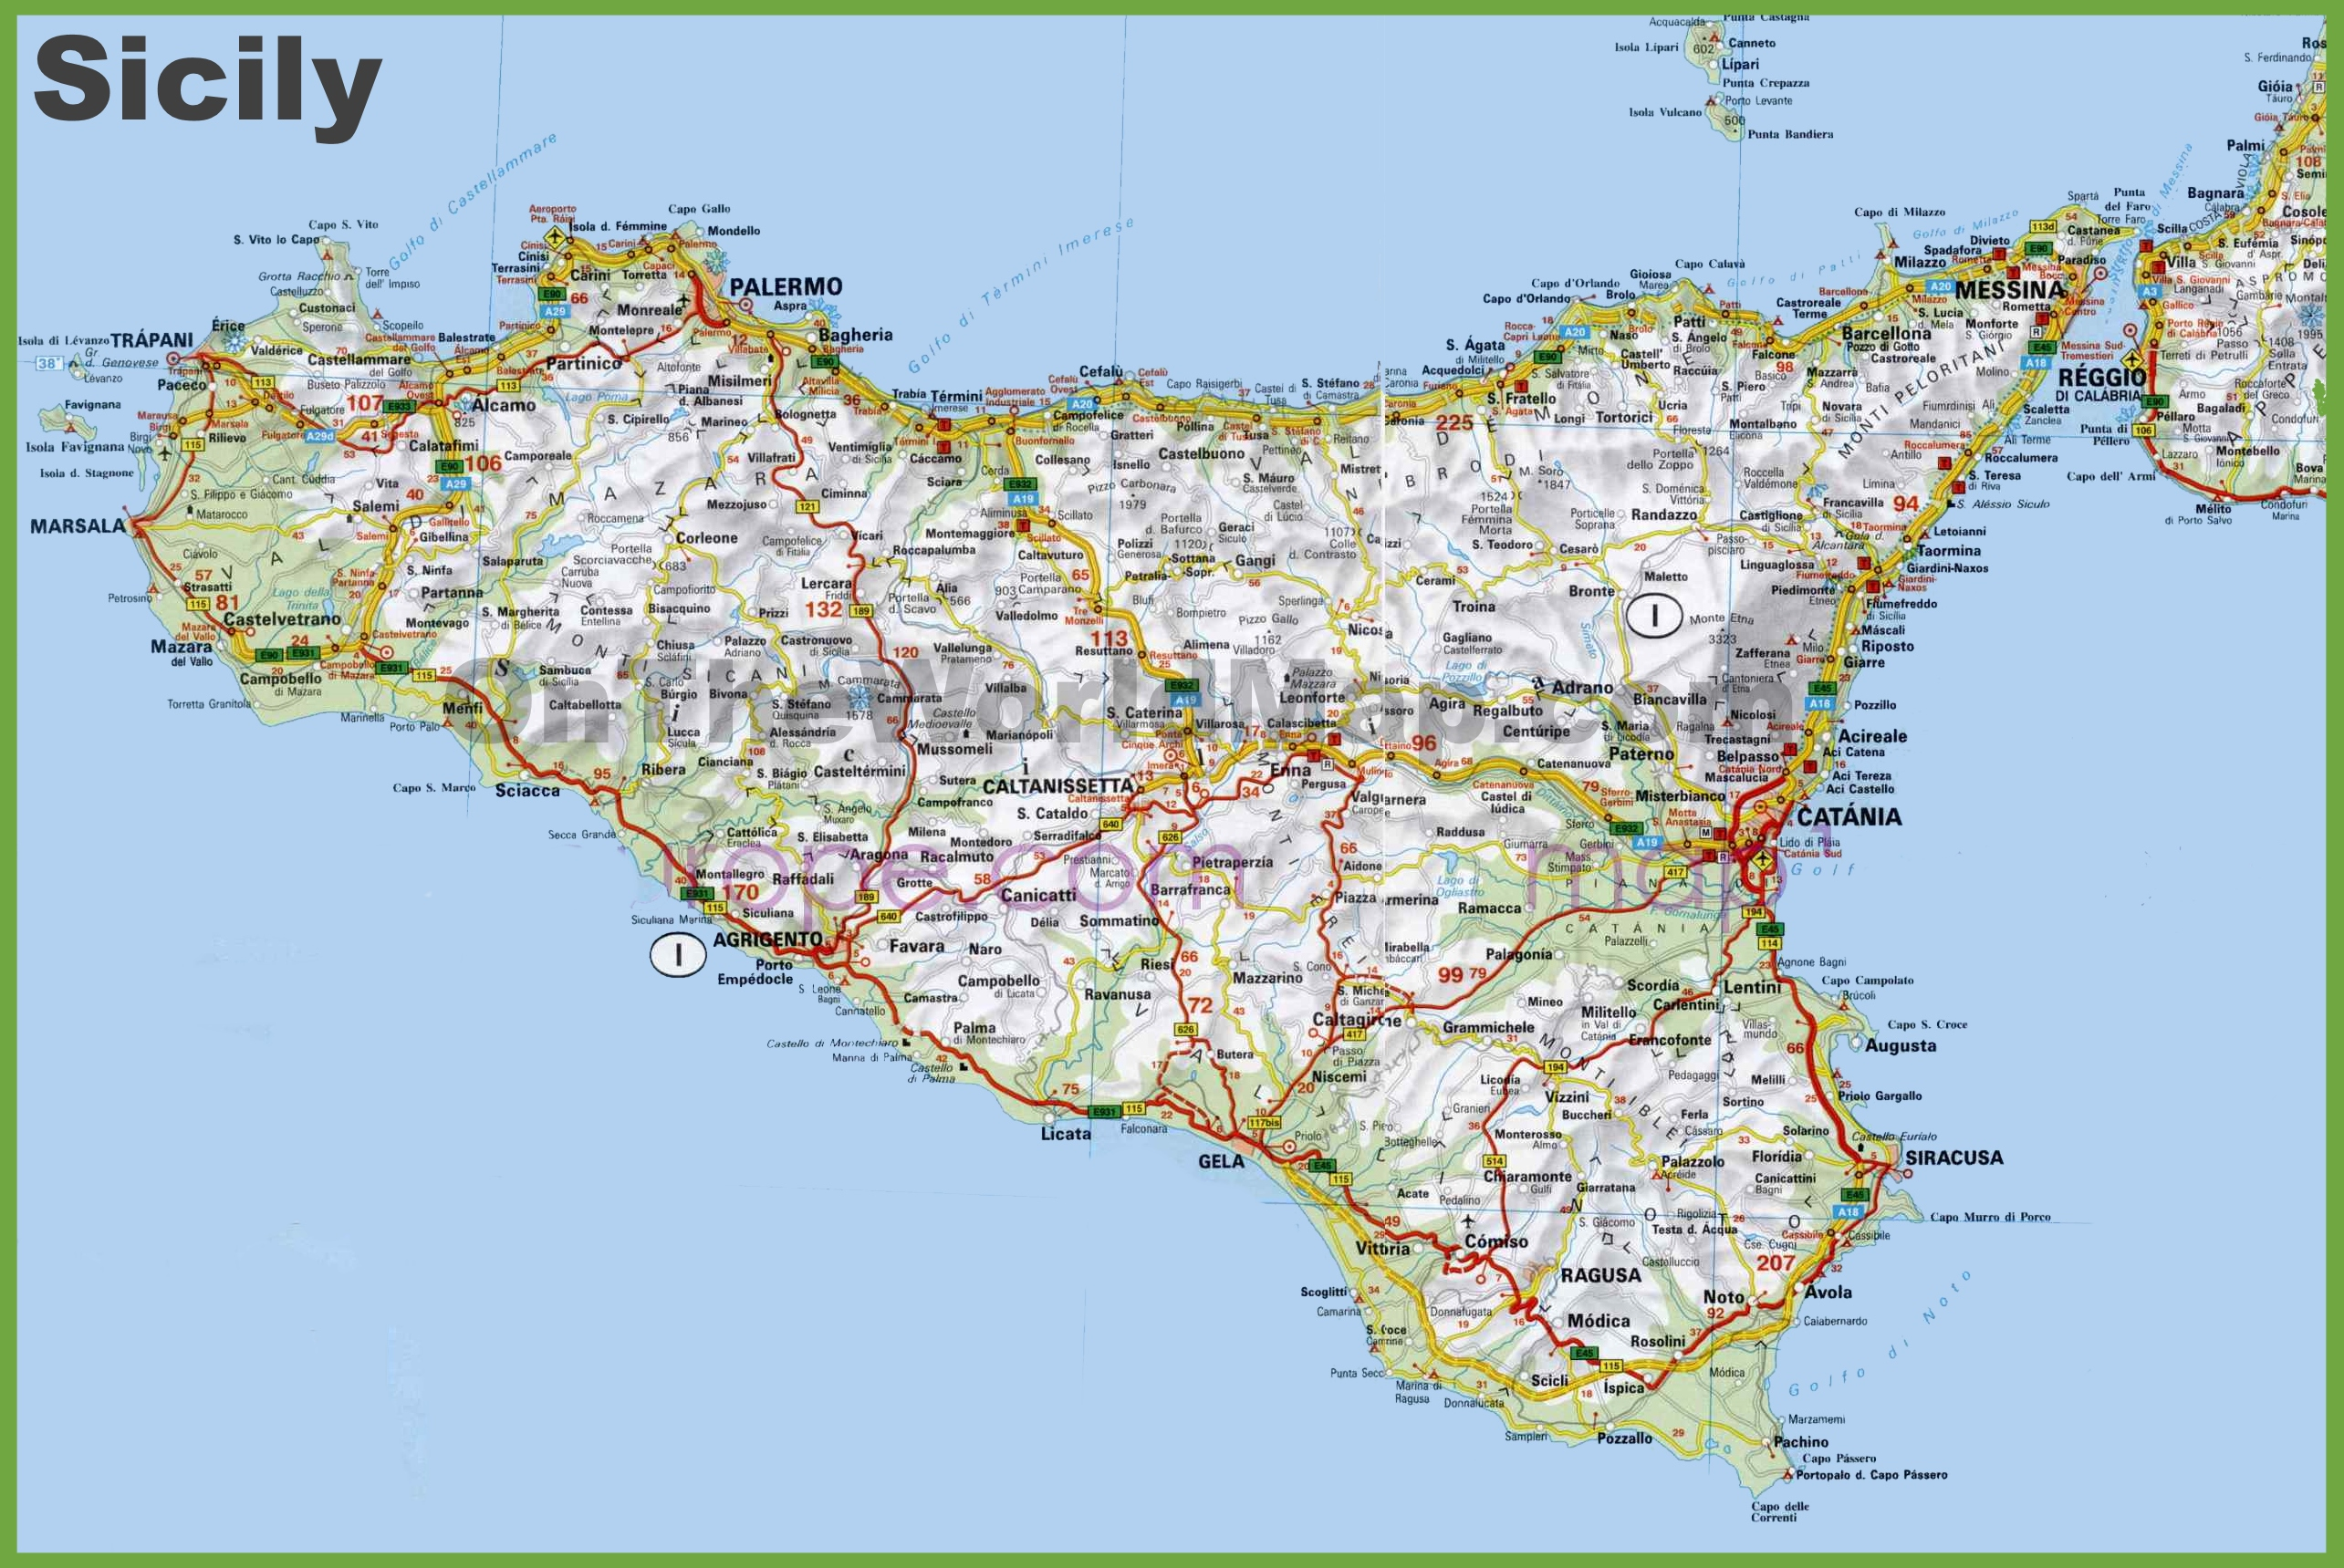 Sicily On Map Of Italy.Large Detailed Road Map Of Sicily